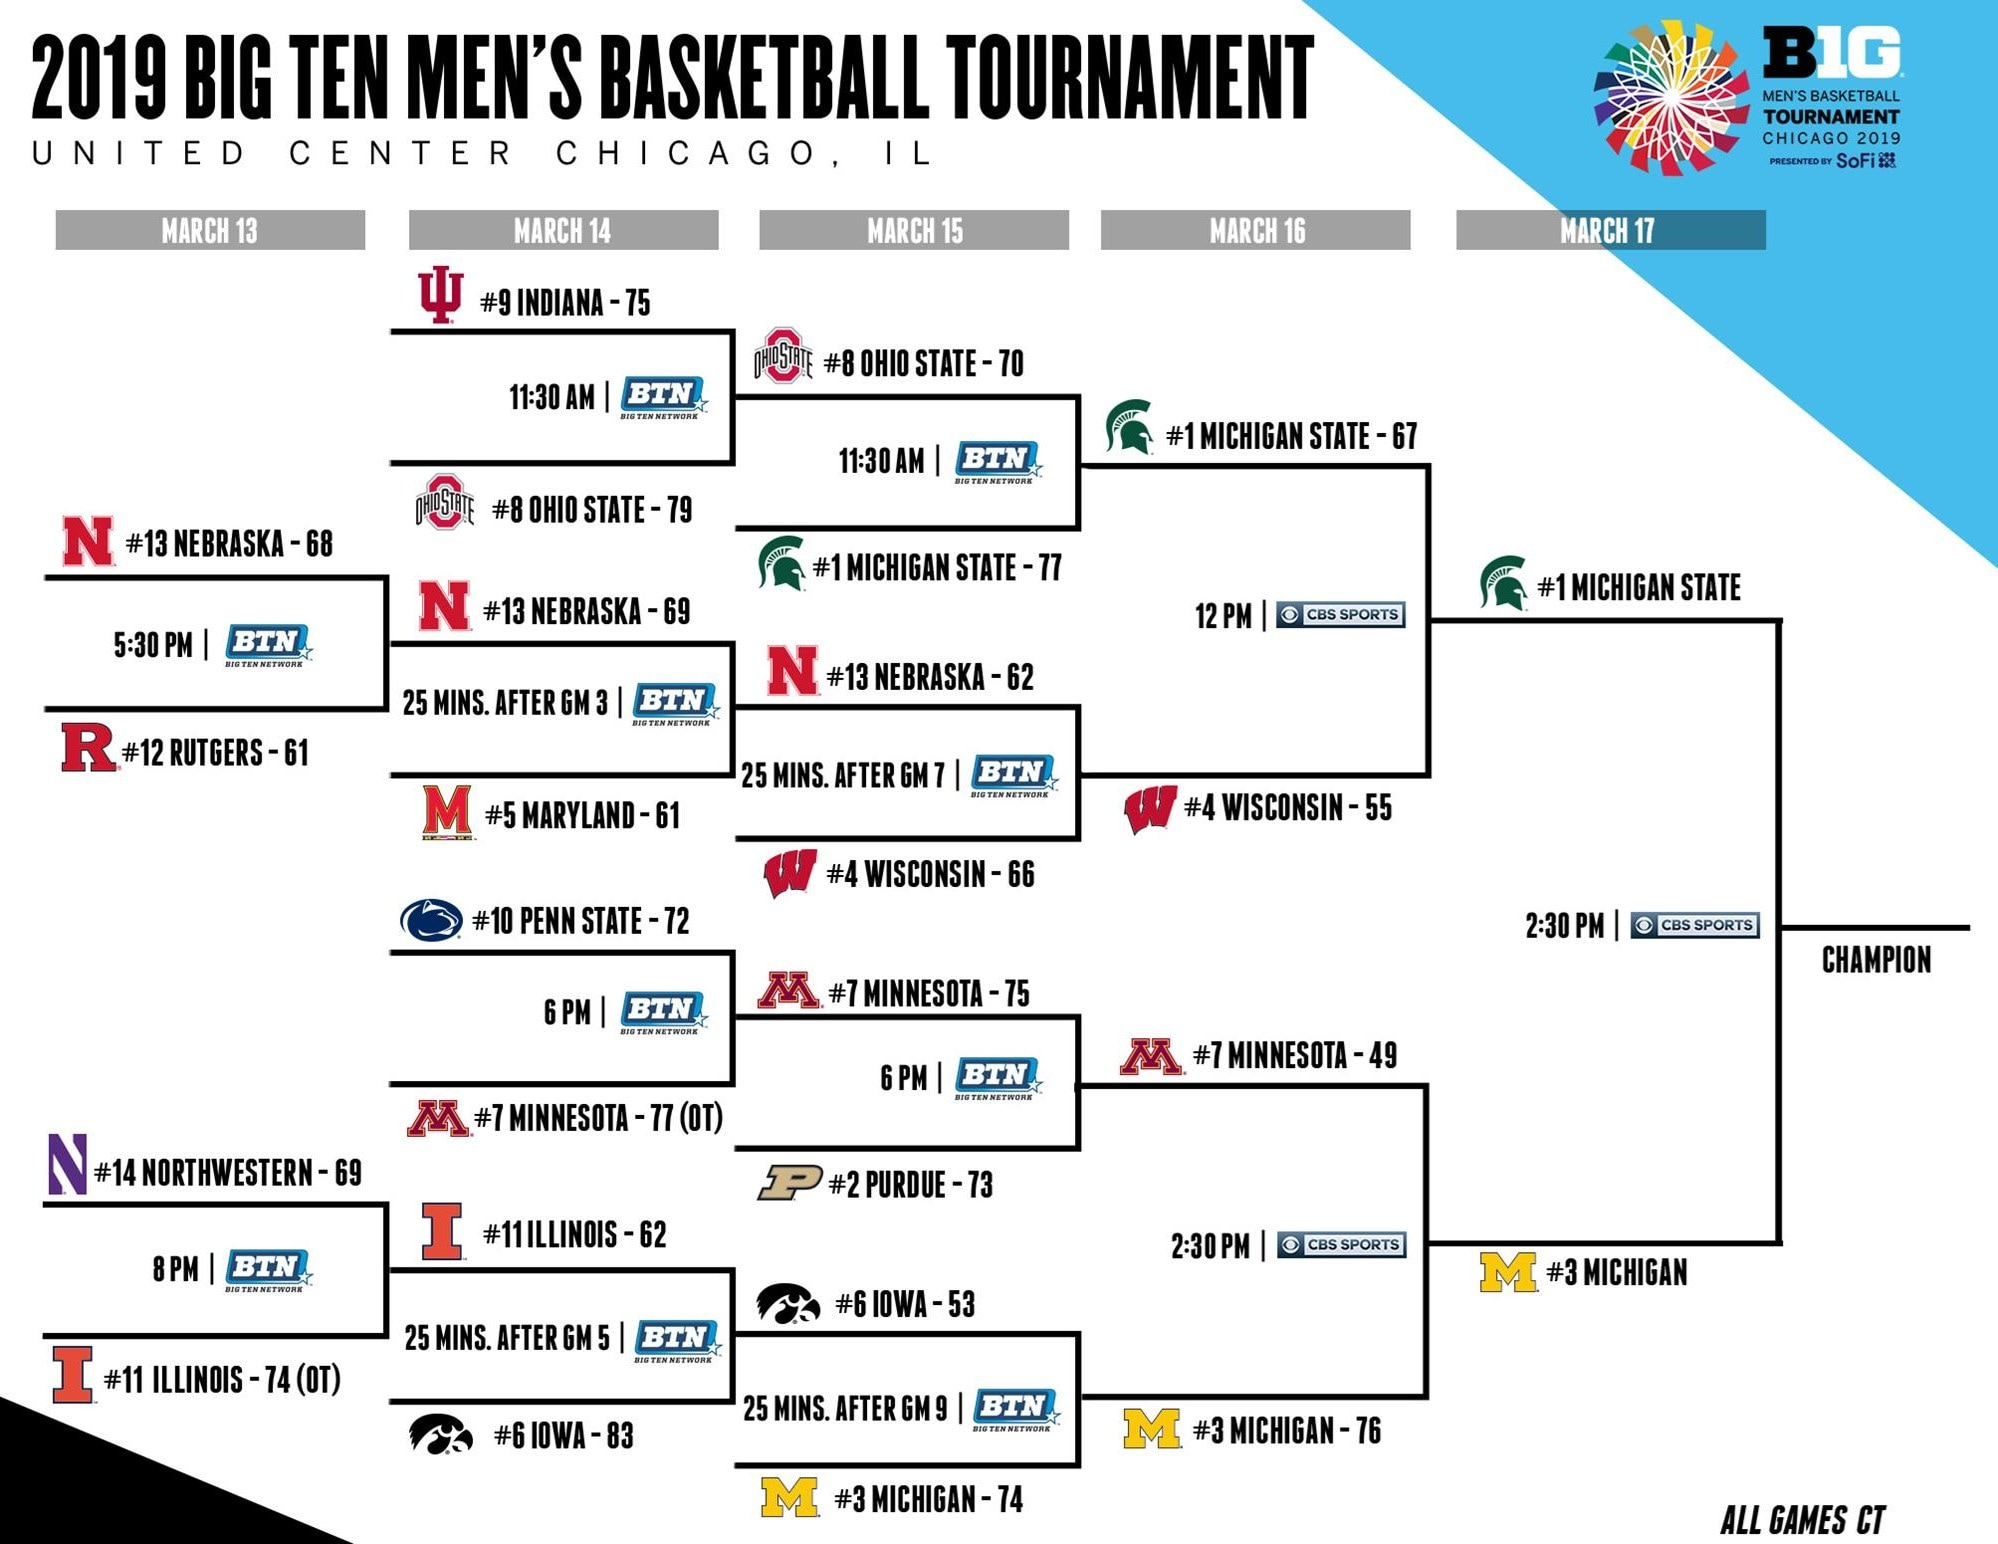 Ncaa Bids 2019 Bracket For March Madness Ncaa Com